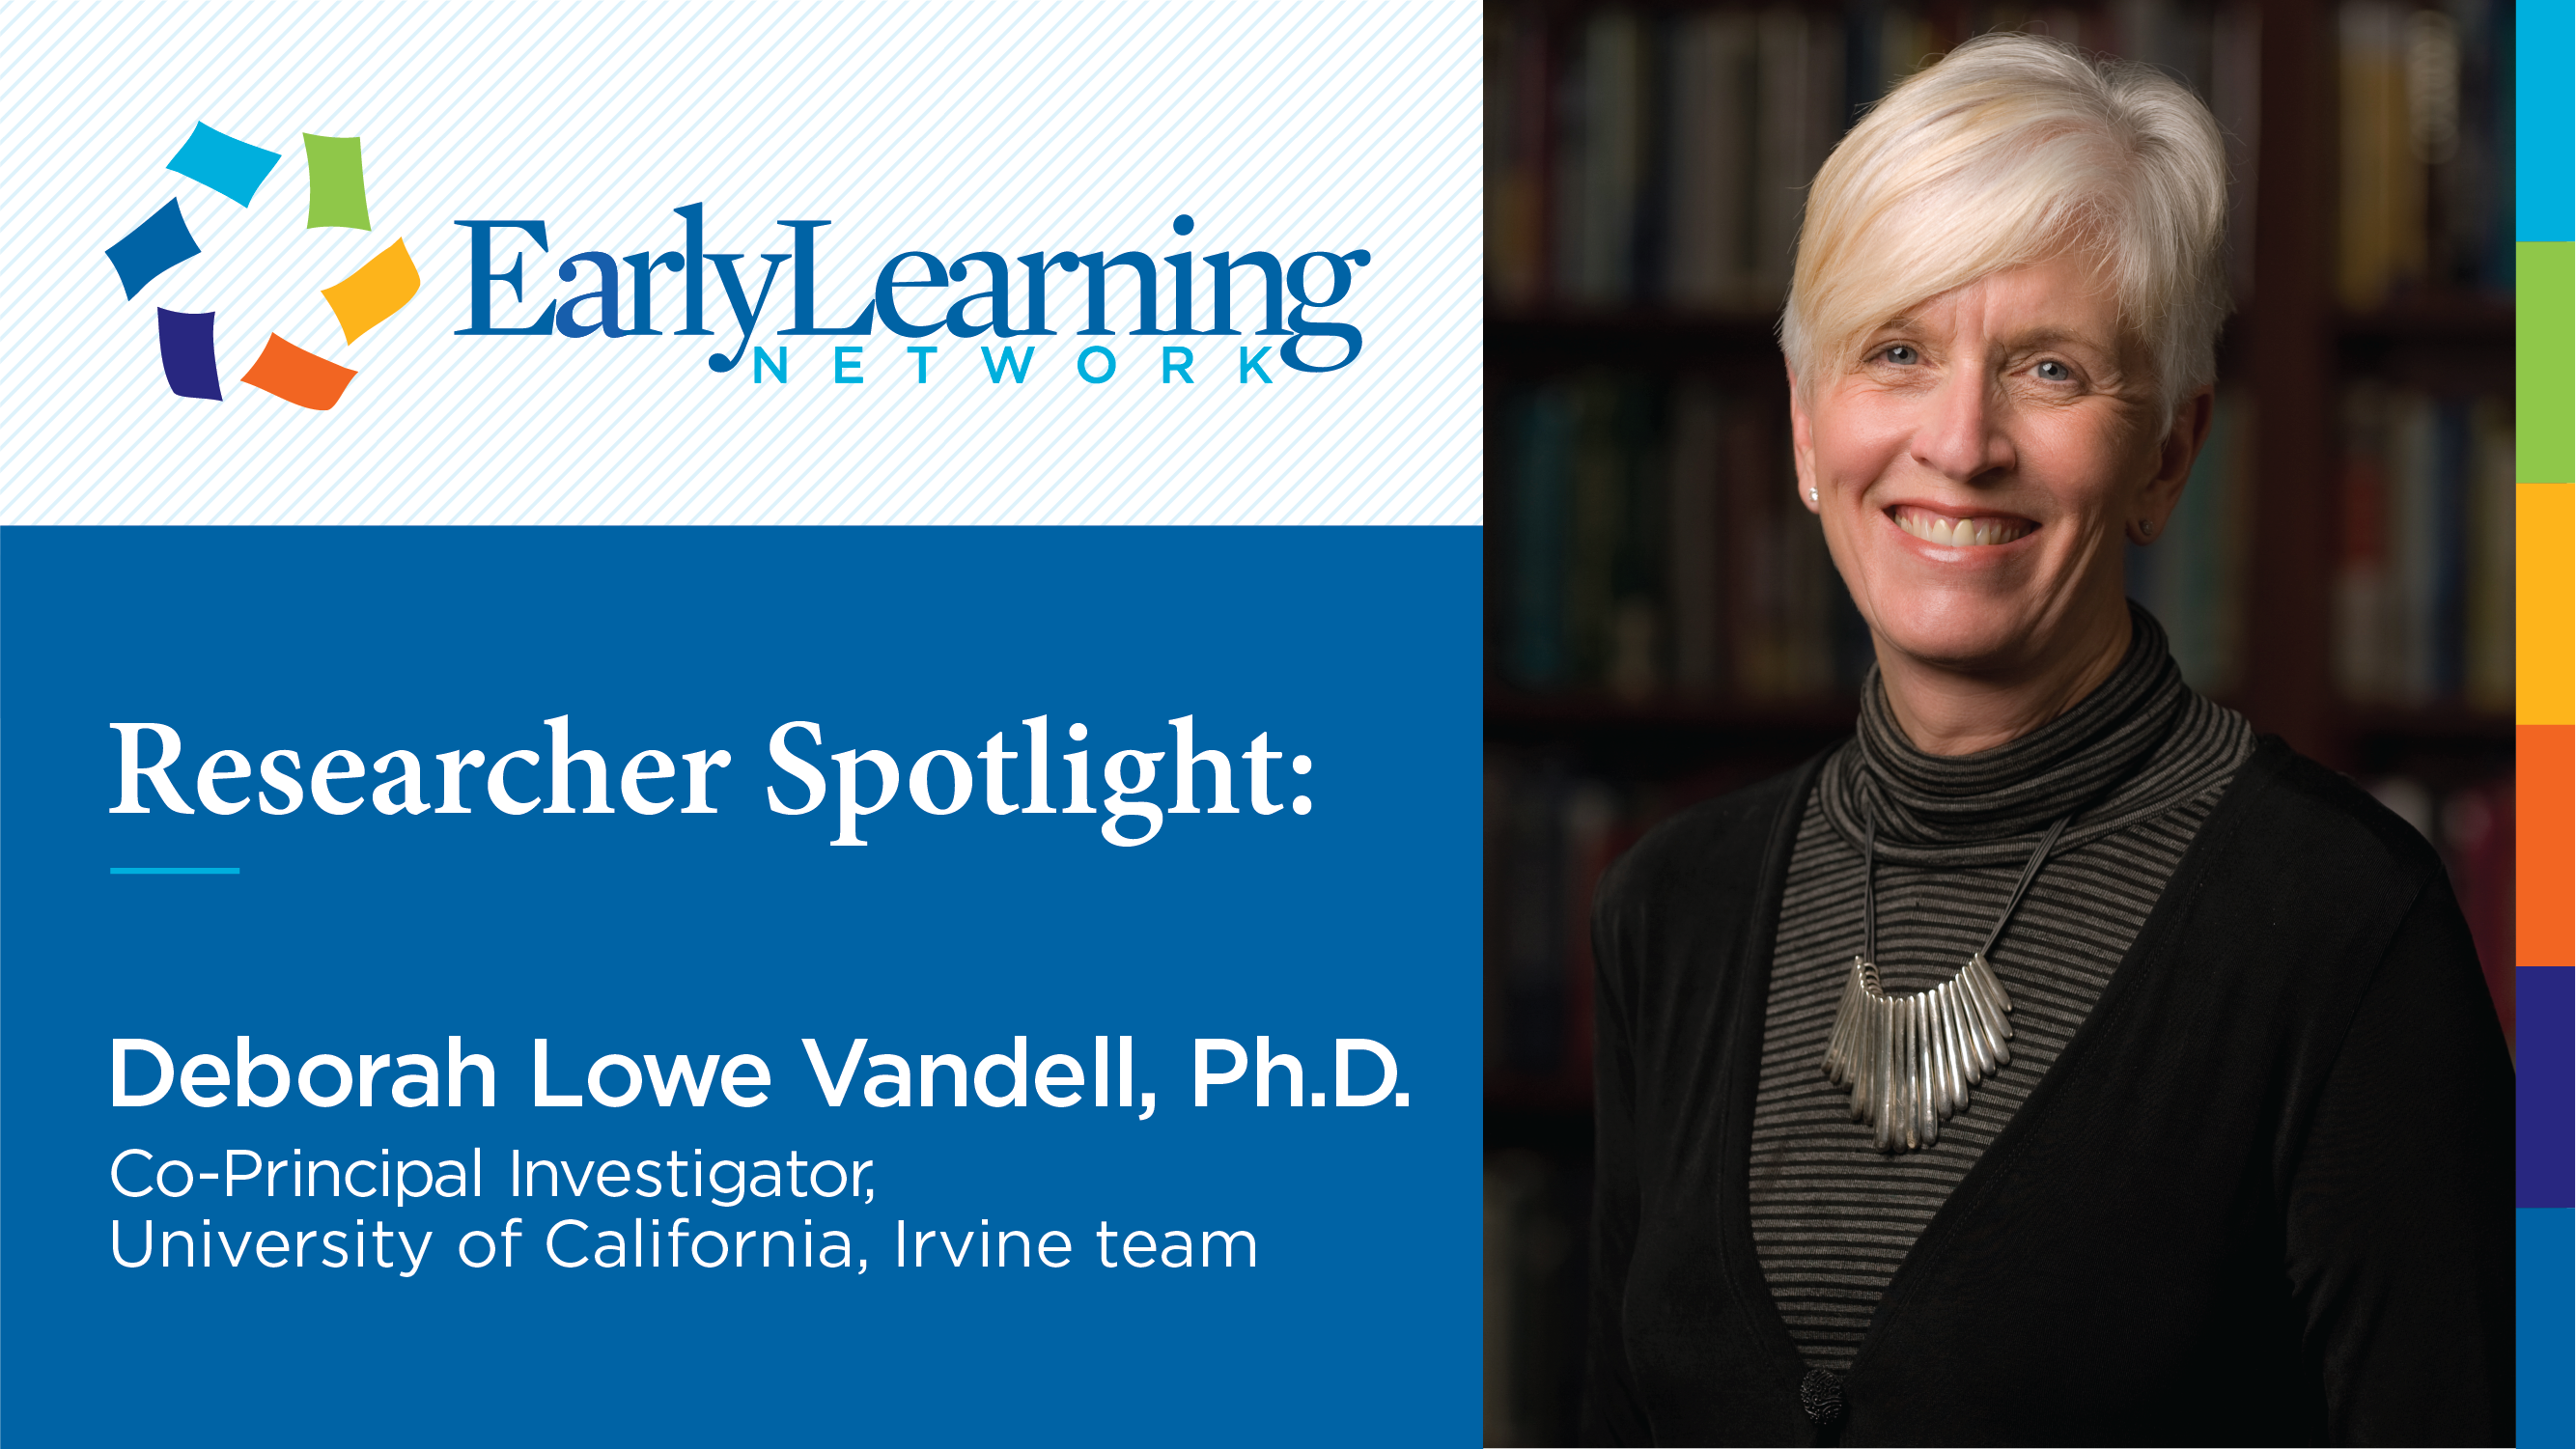 Research Spotlight Deb Low Vandell